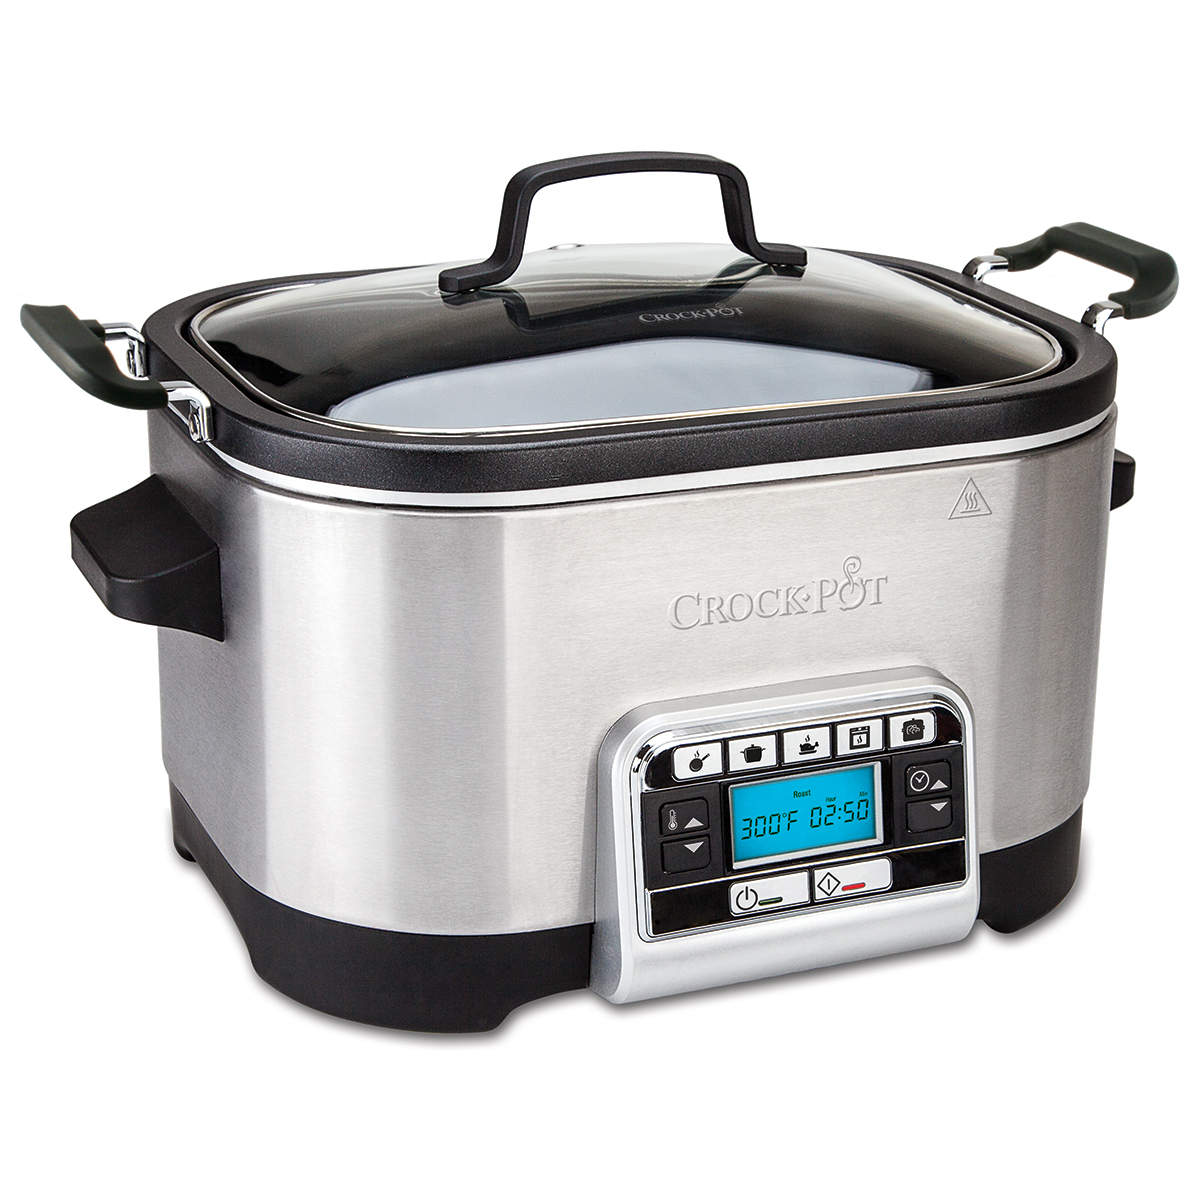 Crockpot multifunktionel slow cooker - 5,6 liter